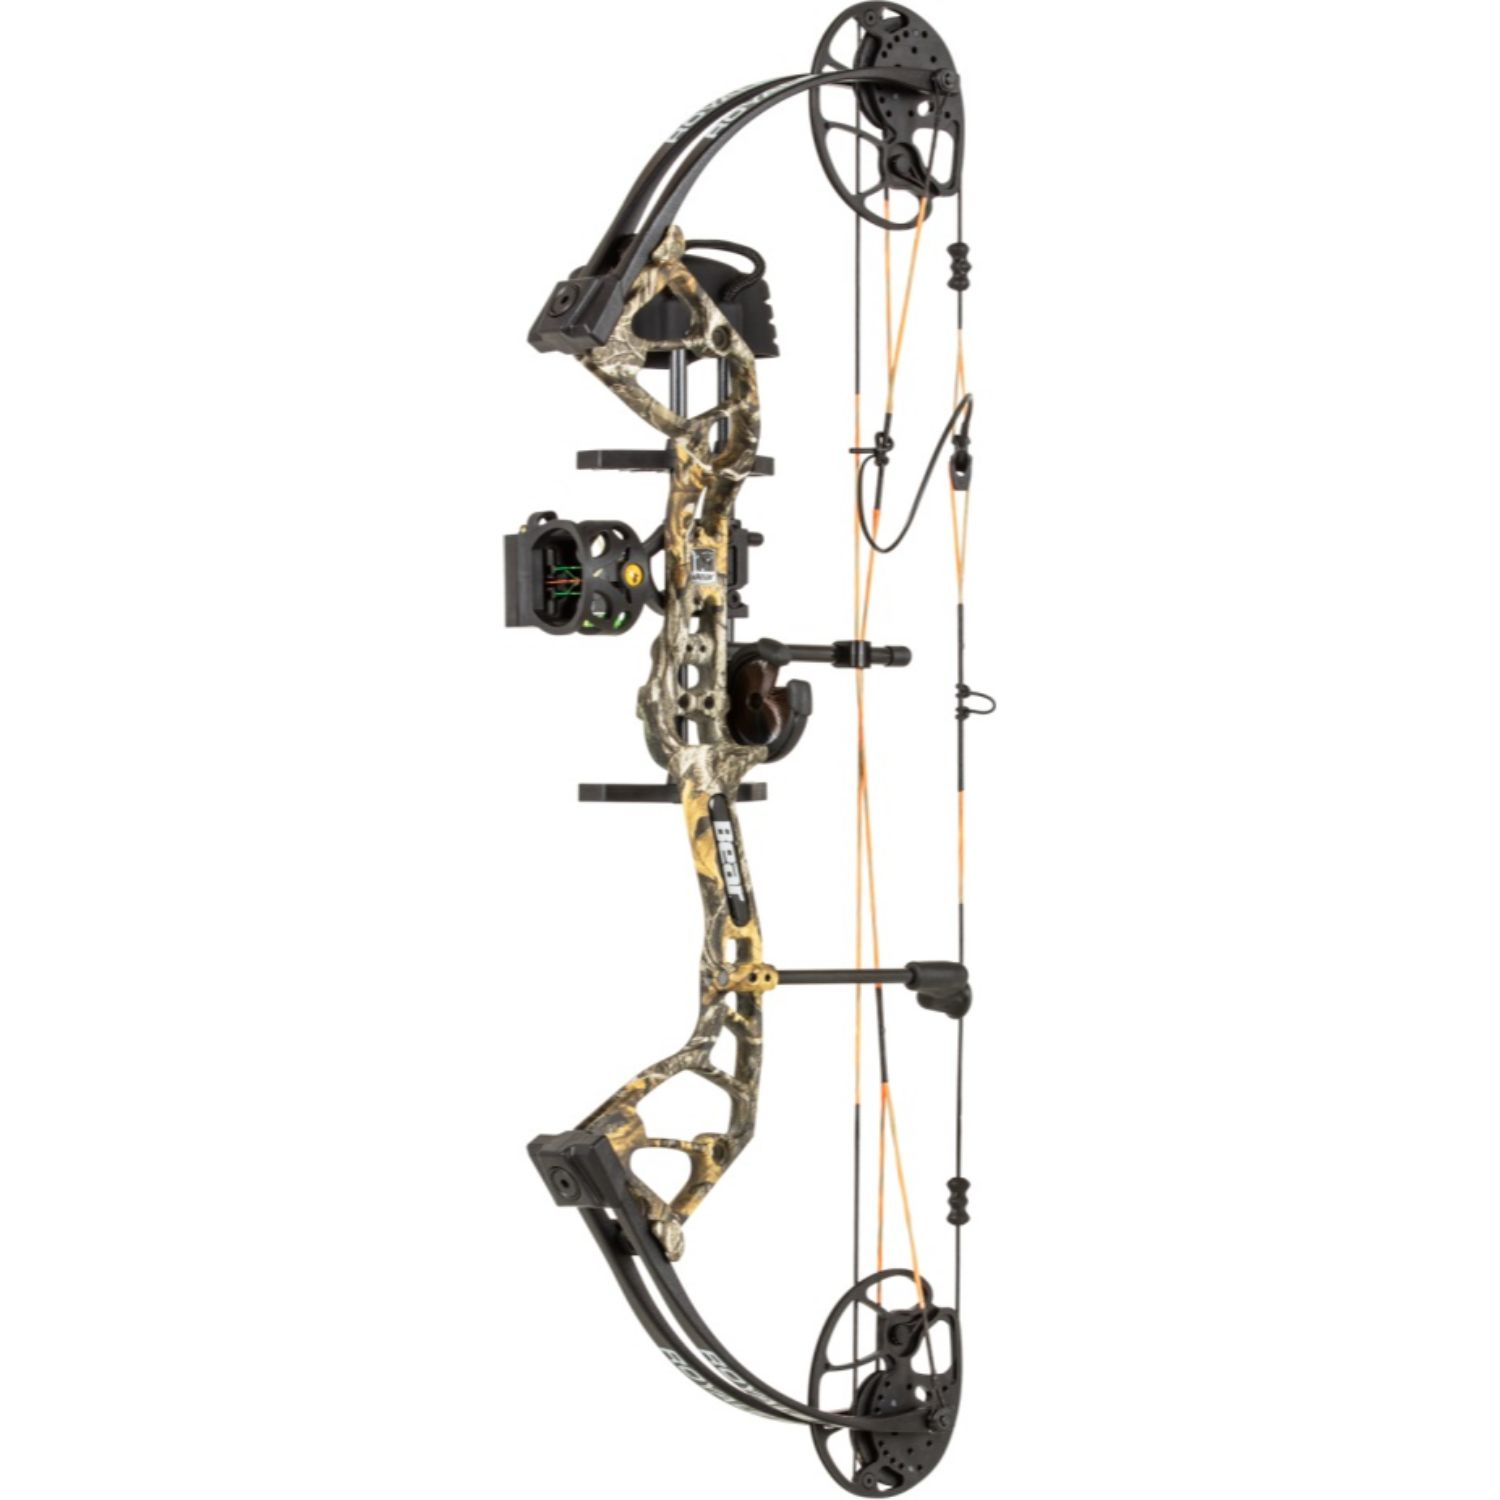 Bear Archery Royale Compound Bow with 5-50 lbs-Realtree Edge